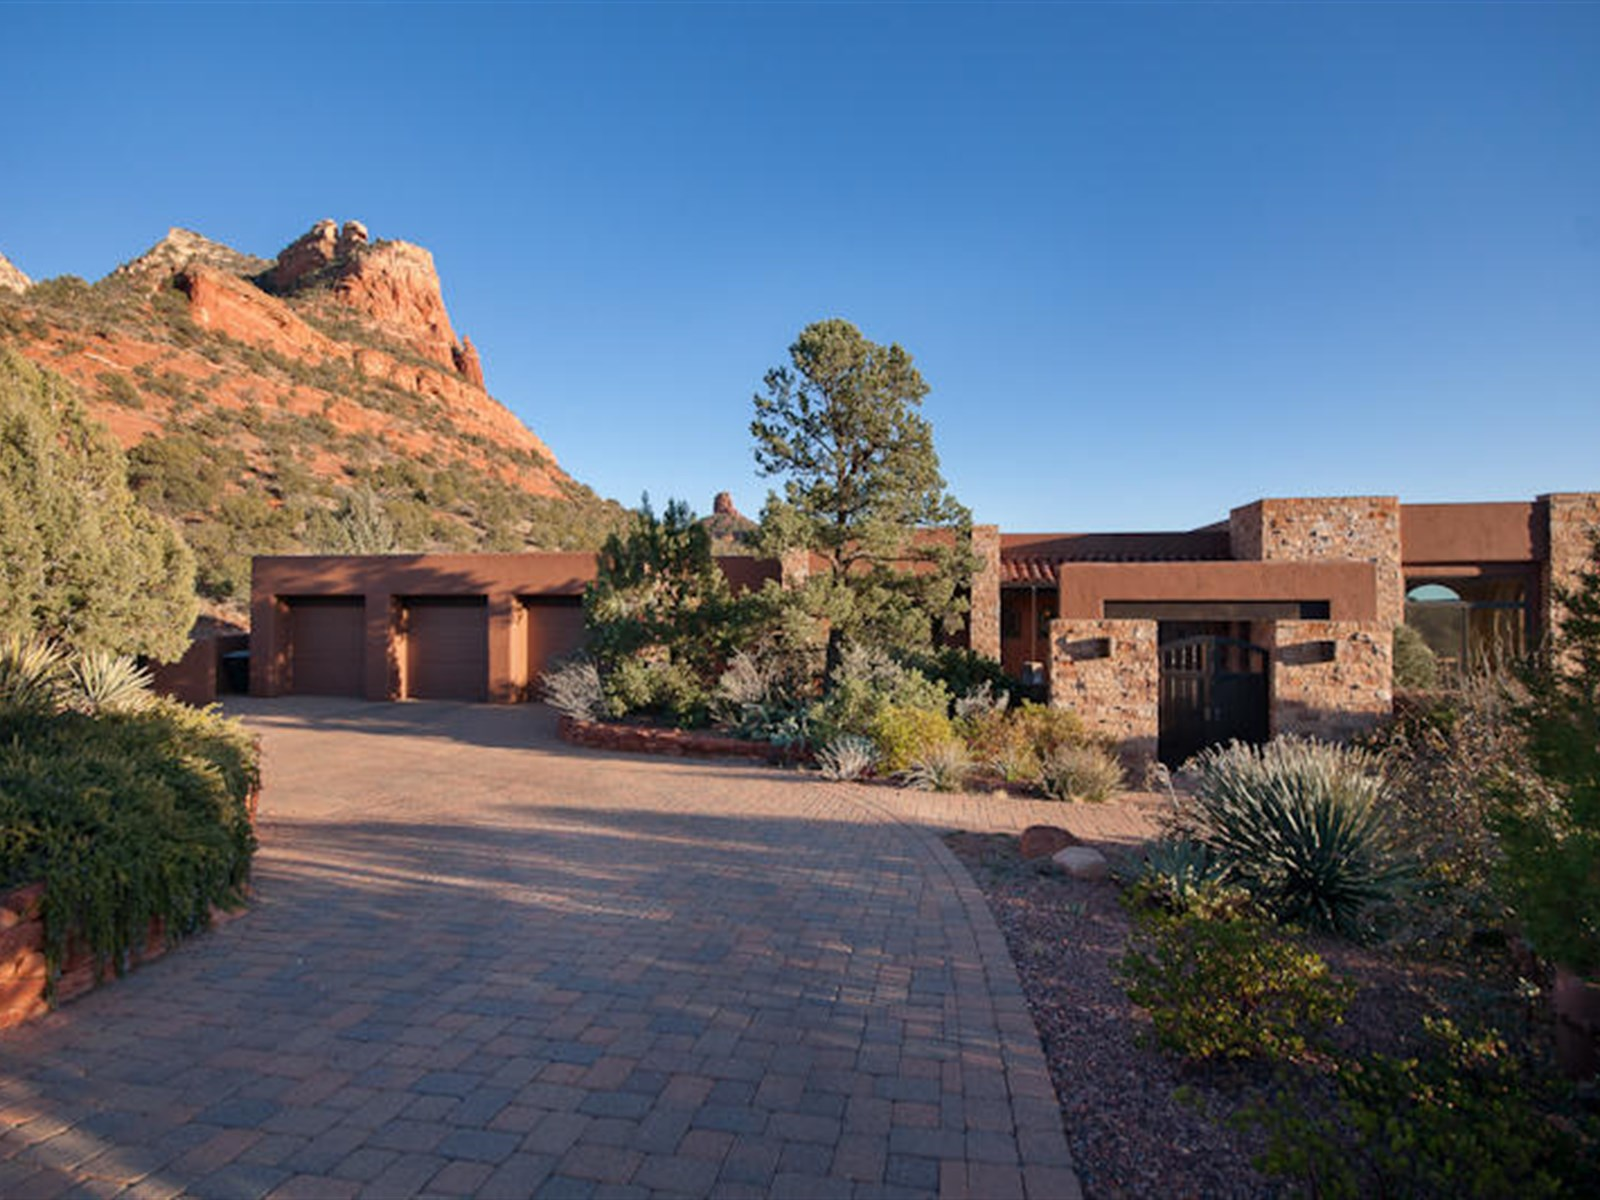 Casa Unifamiliar por un Venta en Exquisite & Private Contemporary Southwest Home 20 Garnet Hill Drive Sedona, Arizona, 86336 Estados Unidos